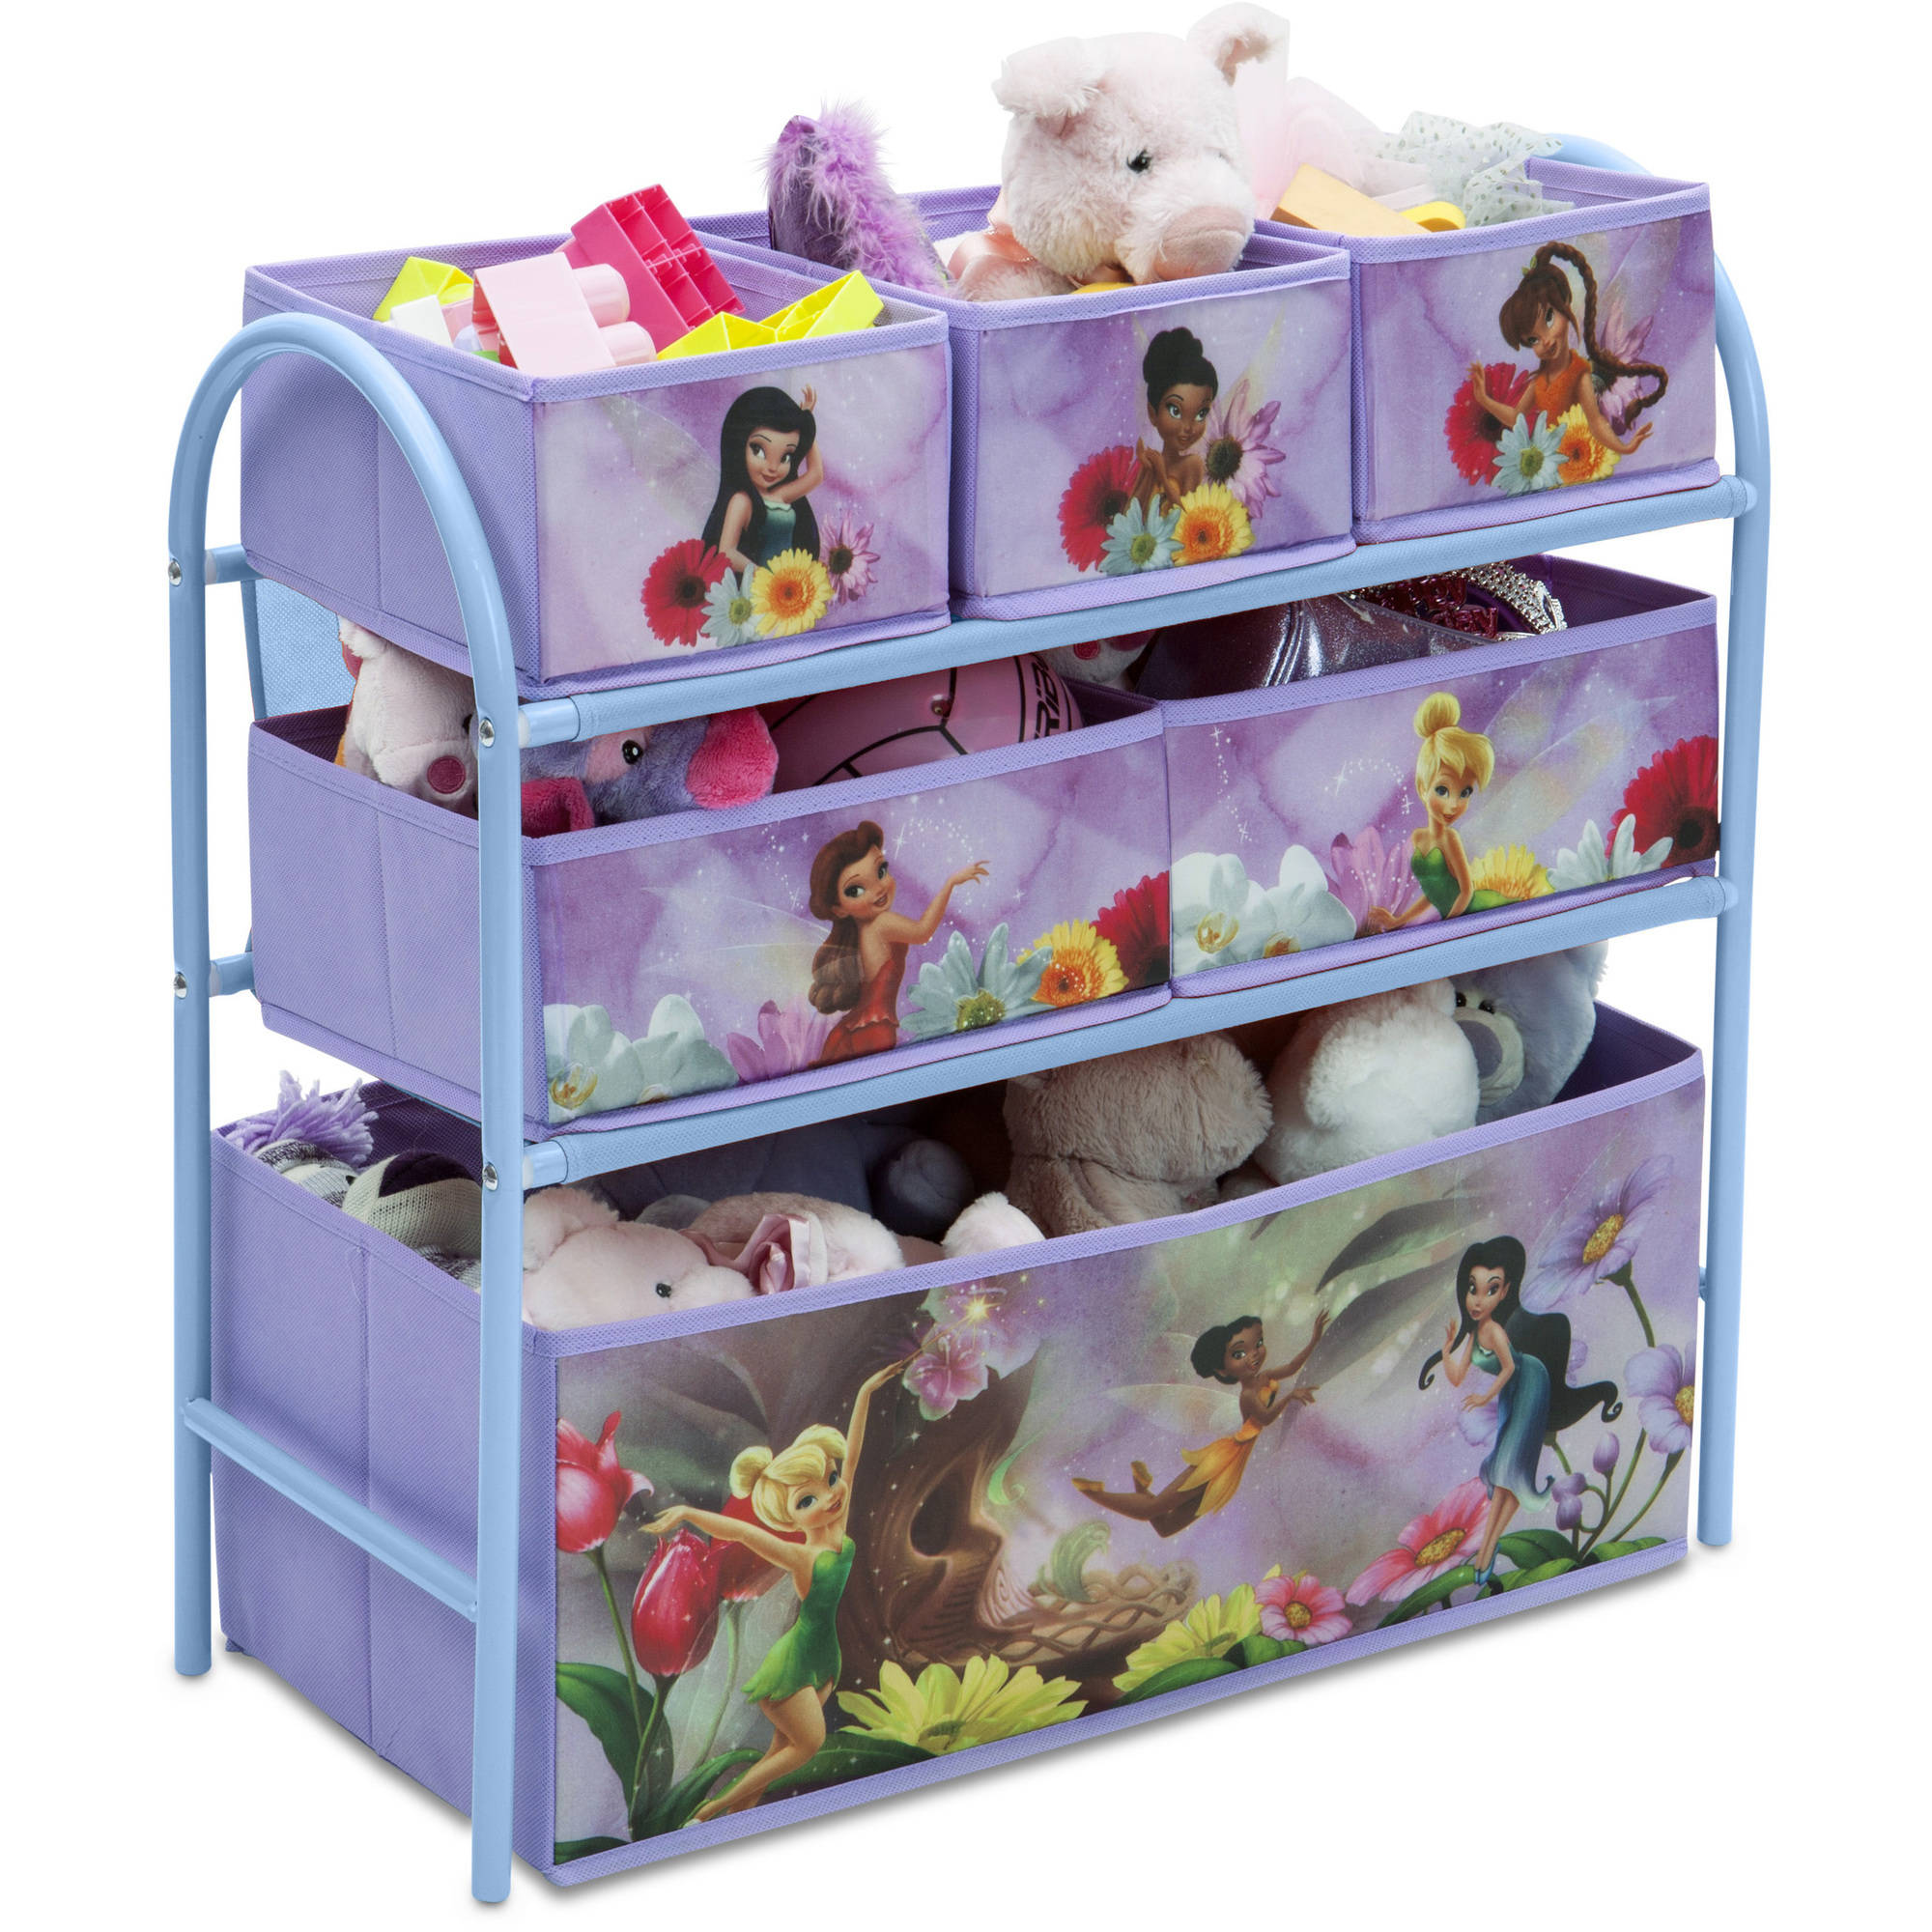 Disney Fairies Metal Multi Bin Toy Organizer, Lavender   Walmart.com